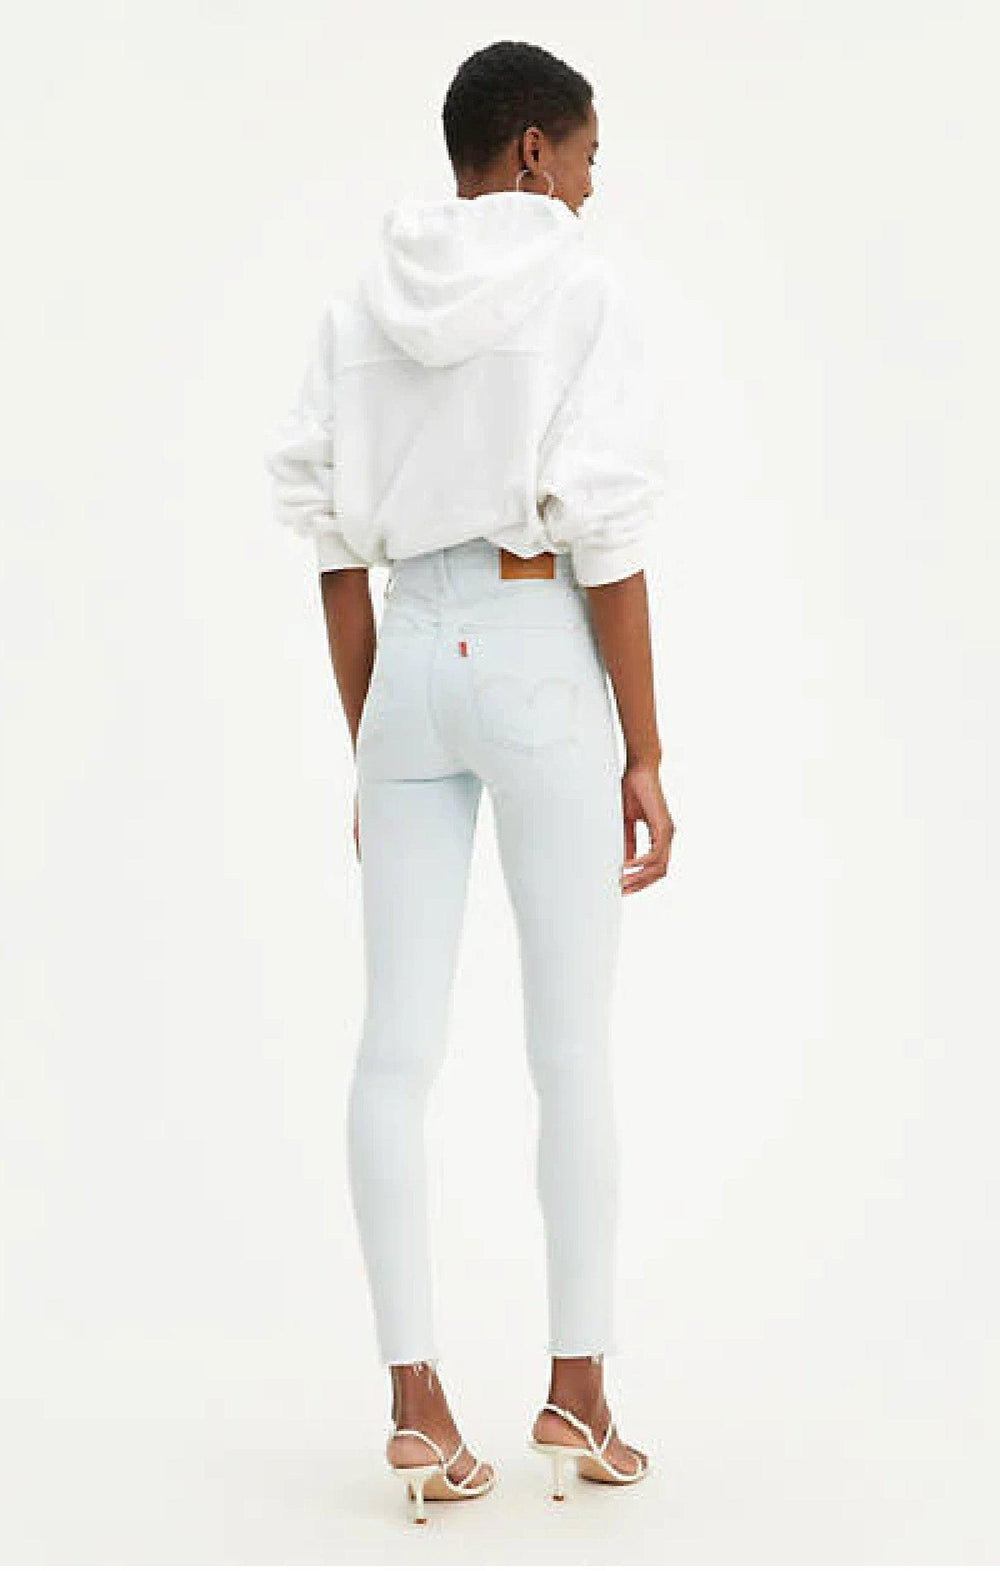 Levi's Mile High Super Skinny Jeans-The Trendy Walrus